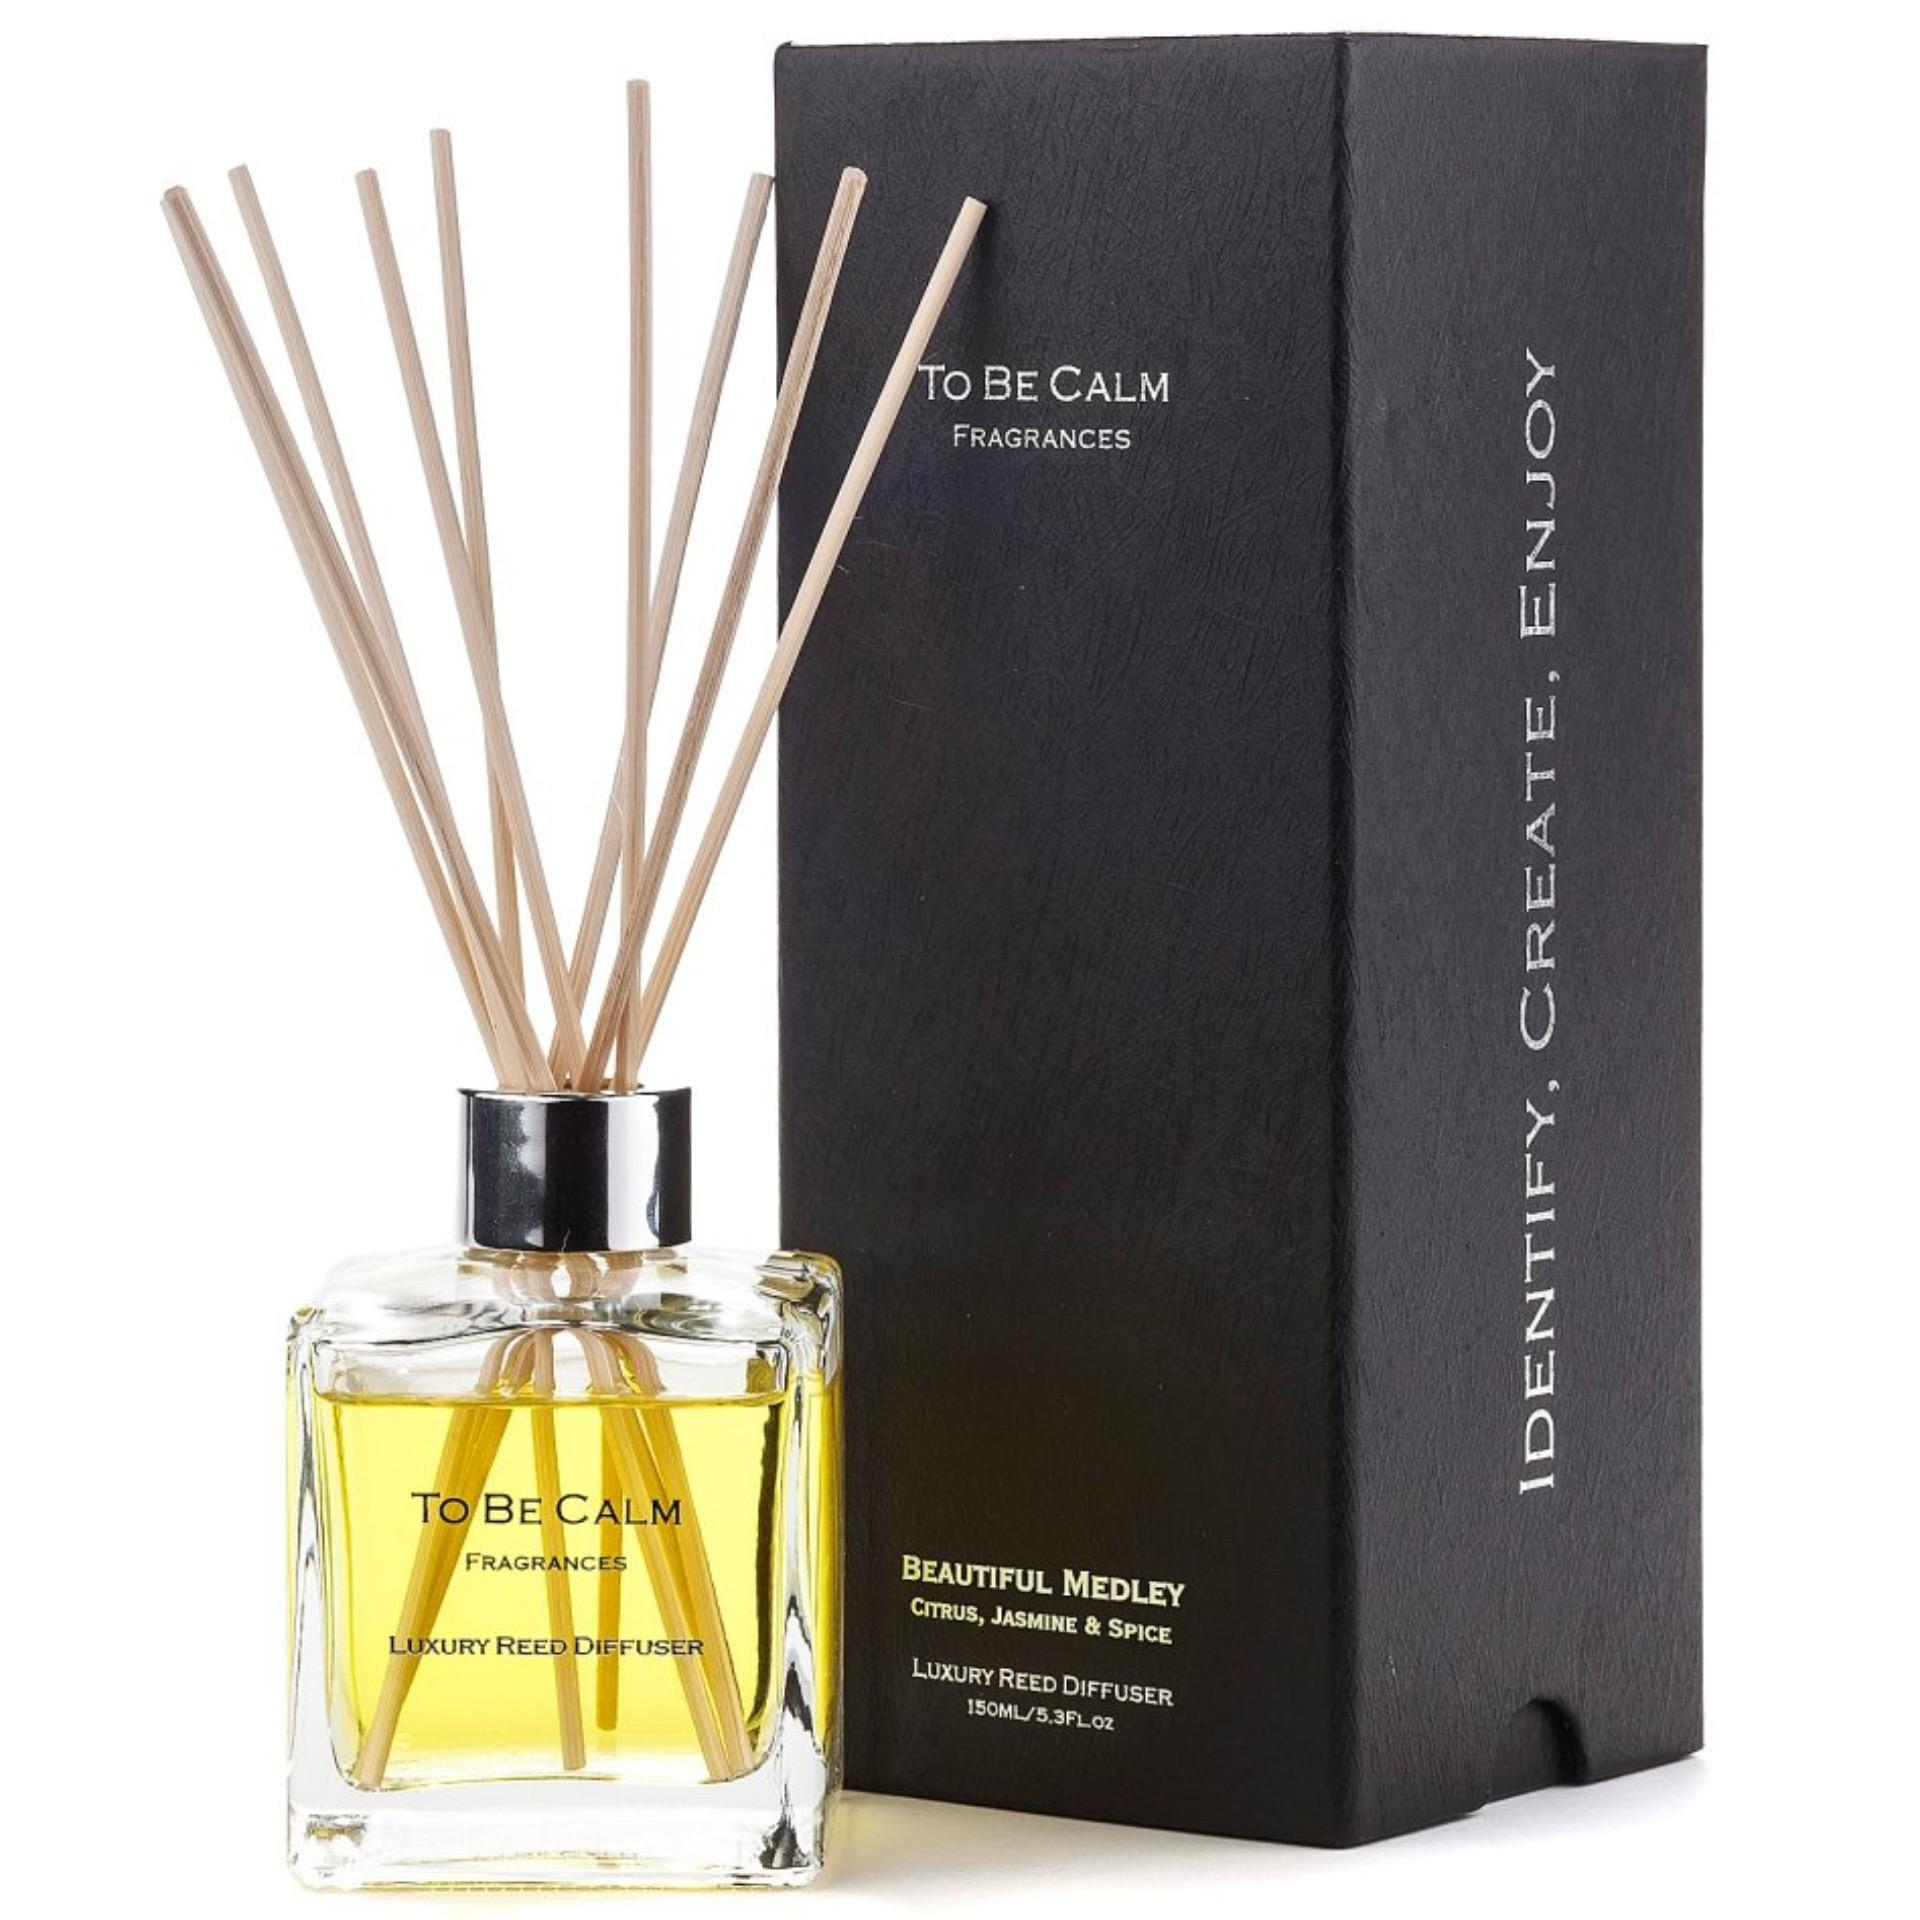 To Be Calm Beautiful Medley - Citrus, Jasmine & Spice -  Reed Diffuser